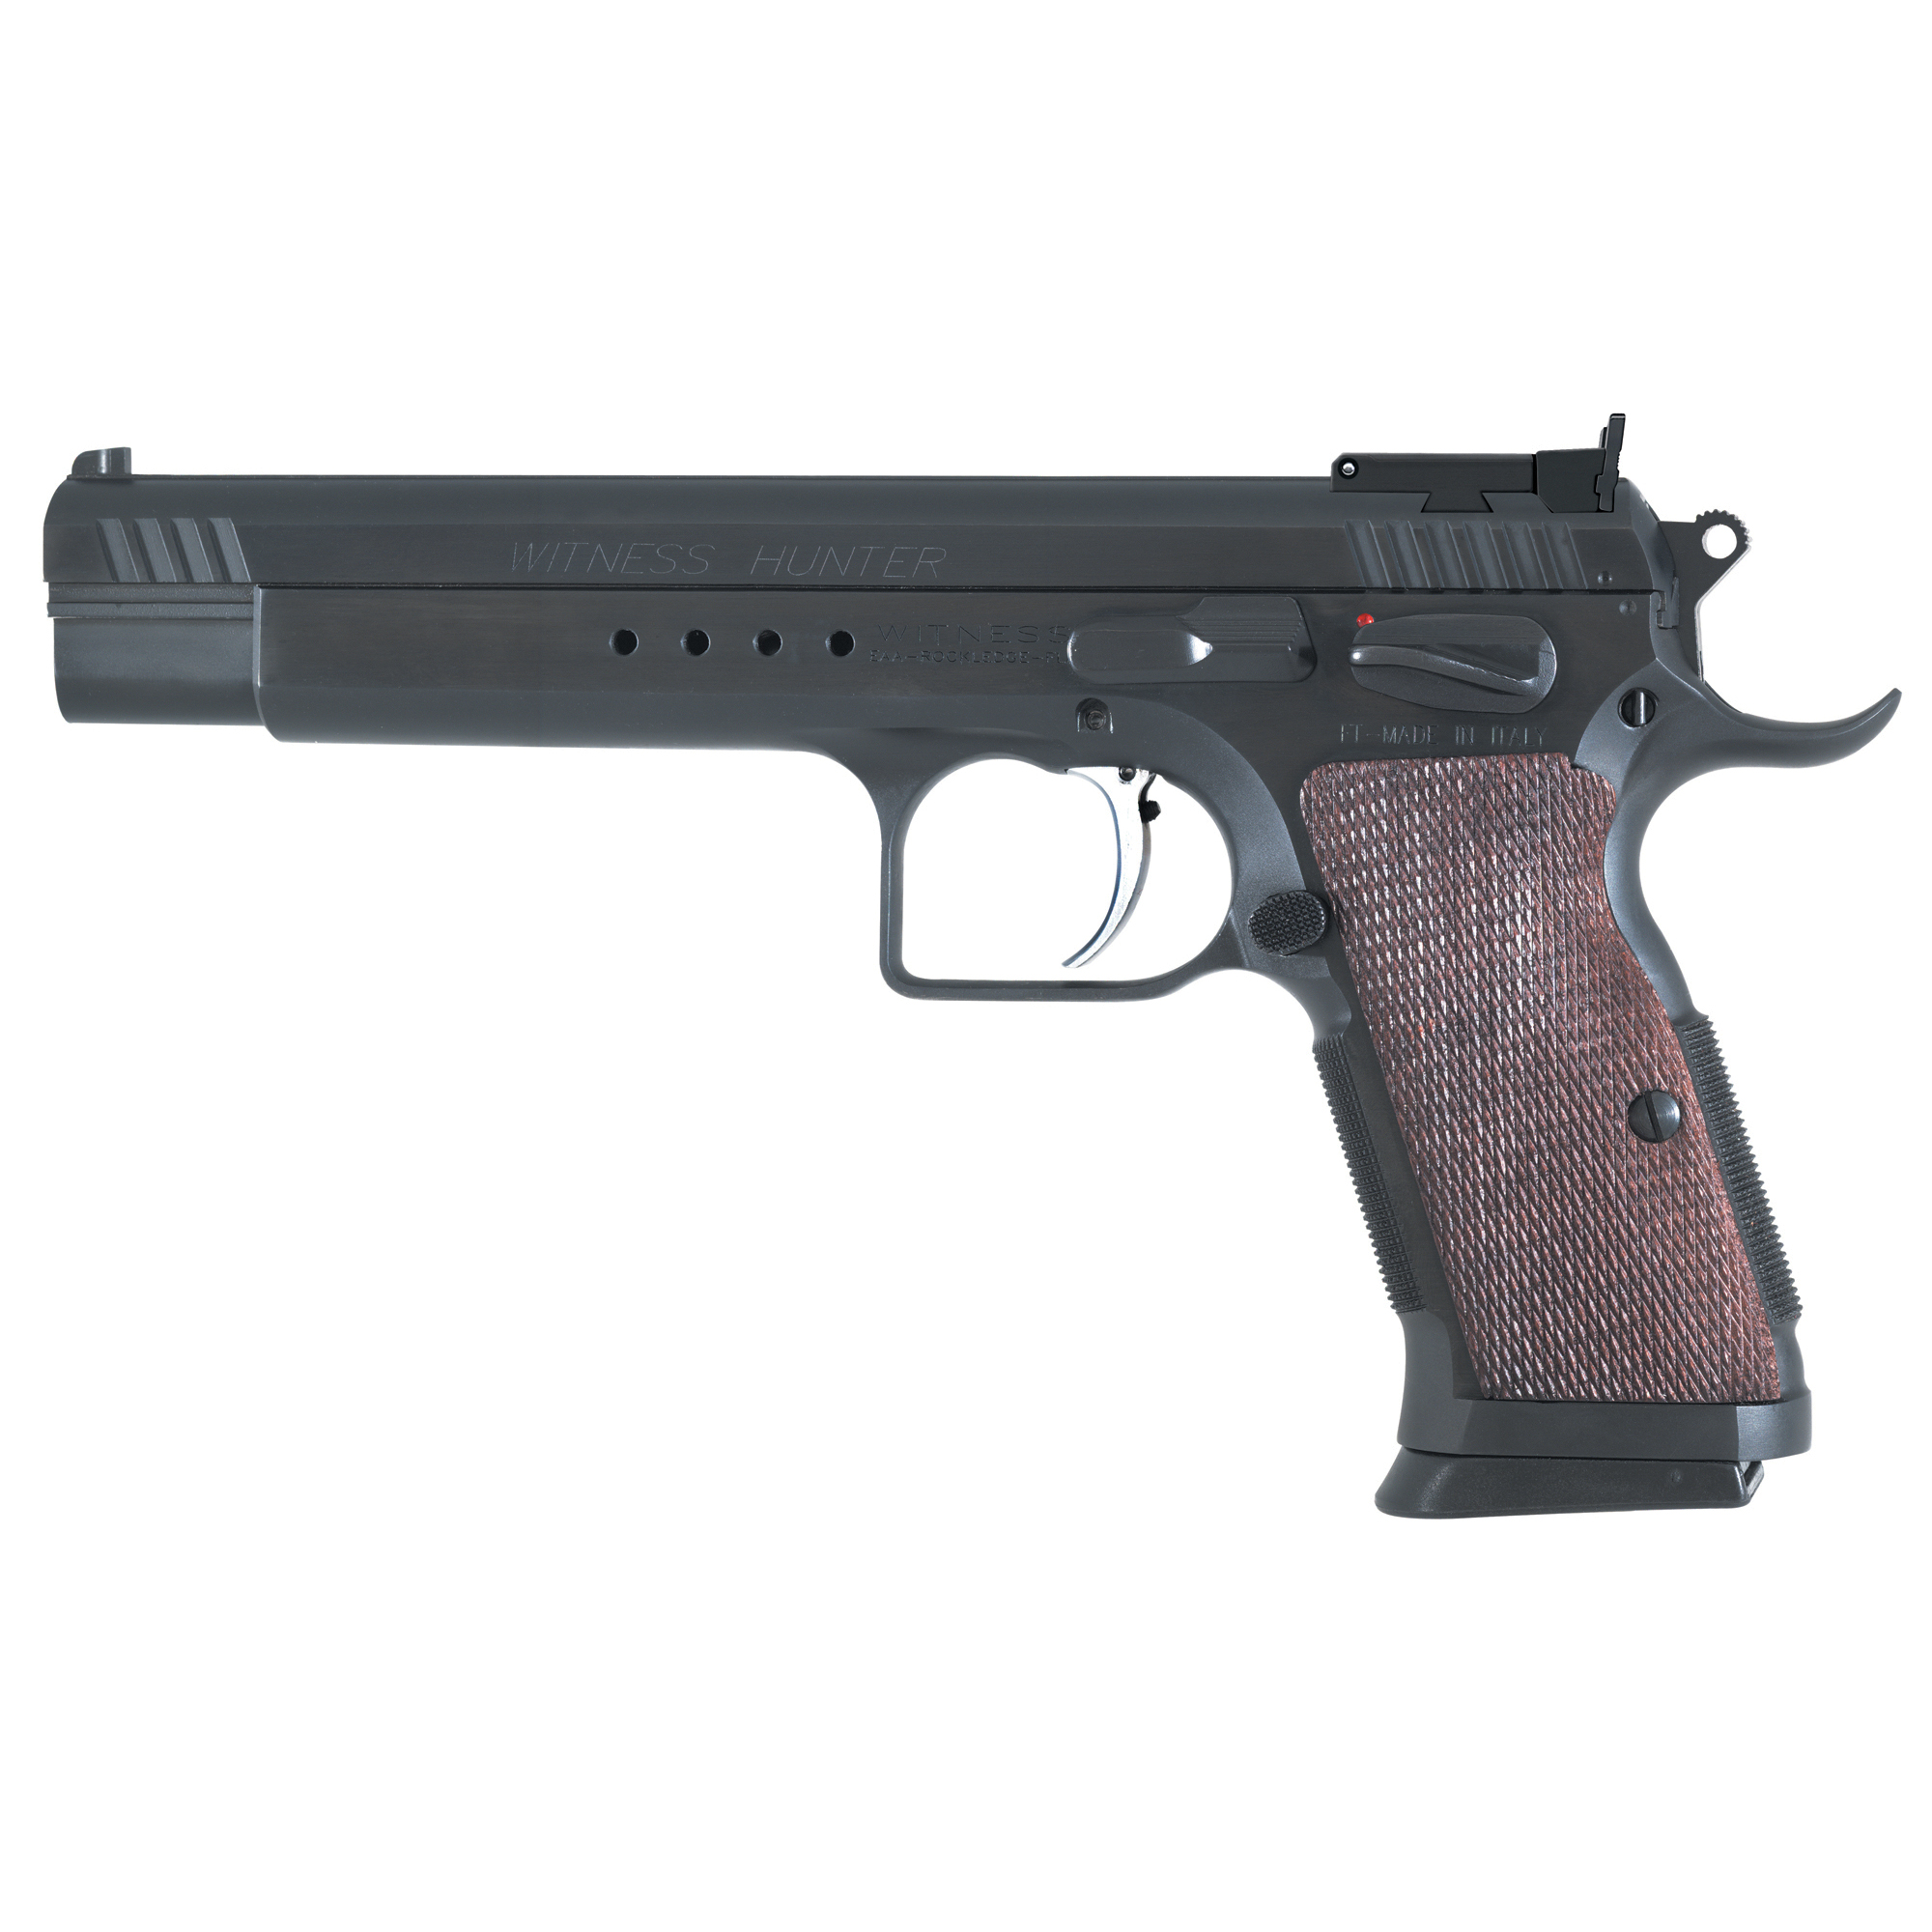 Been thinking about doing a little Pistol Hunting? Get a Witness Hunter and you will drop them where they stand. The Witness Hunter has a competition steel frame and competition barrel.